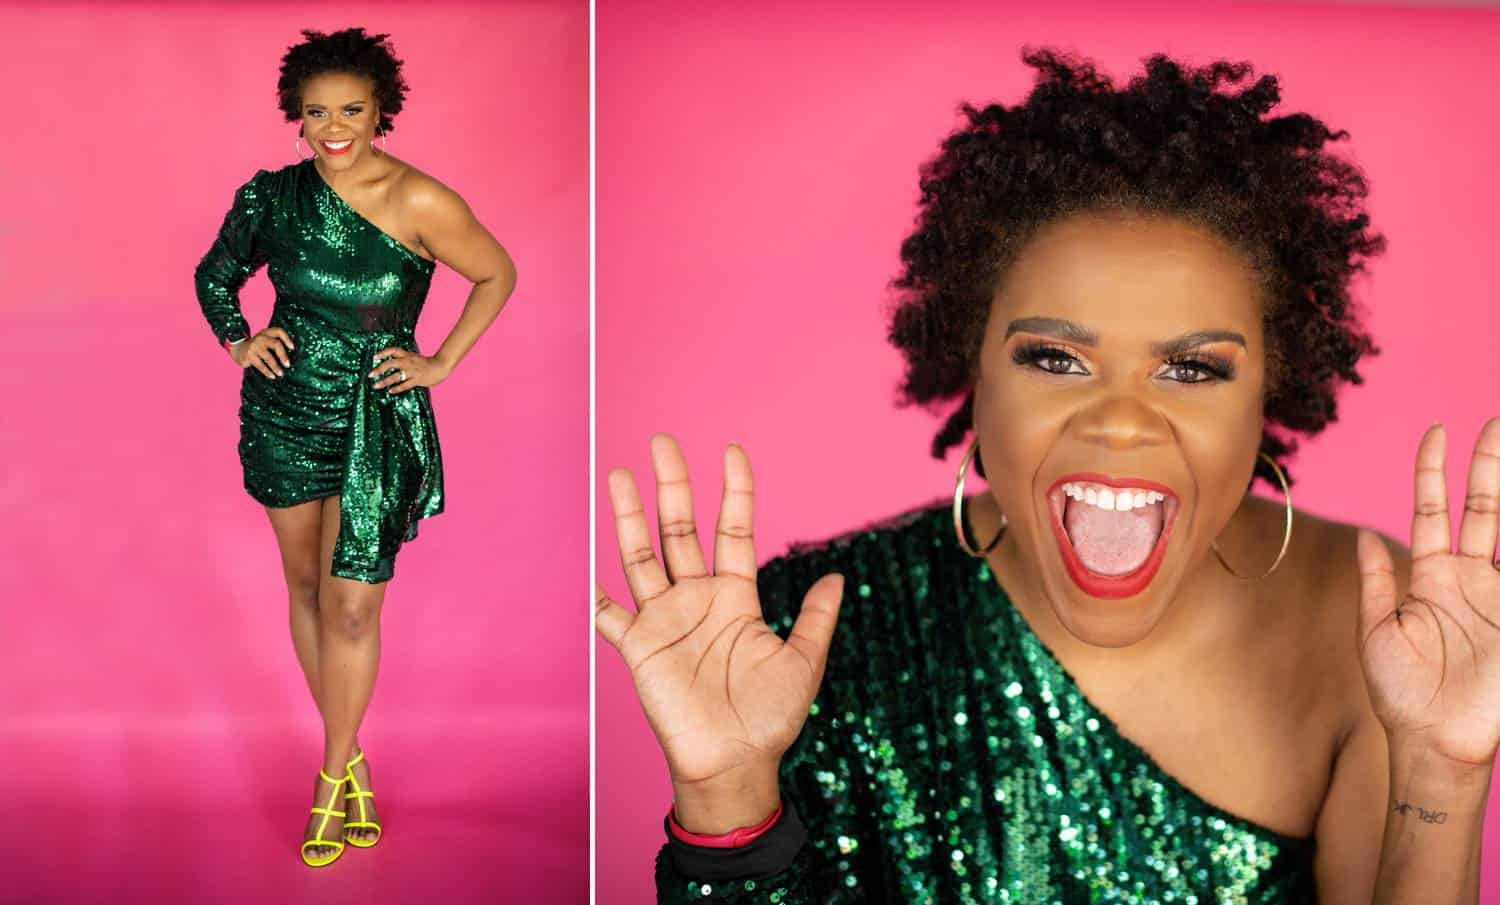 Two self-portraits of LaJune King show the Frisco, Texas photographer in an emerald green, sequined mini dress posing on a hot pink backdrop.